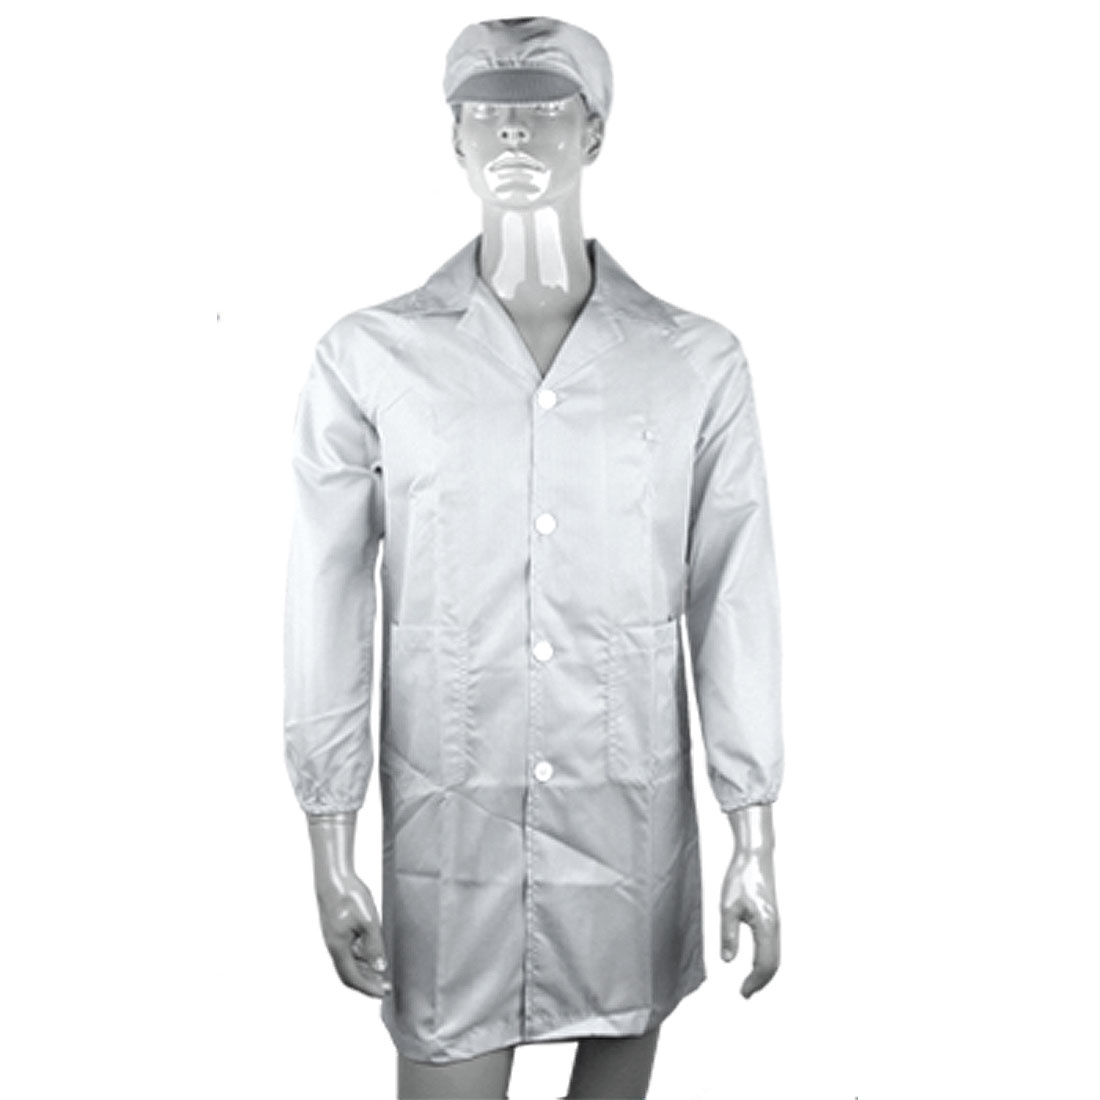 Size S Unisex Anti-static LAB Smock Clothes Coat